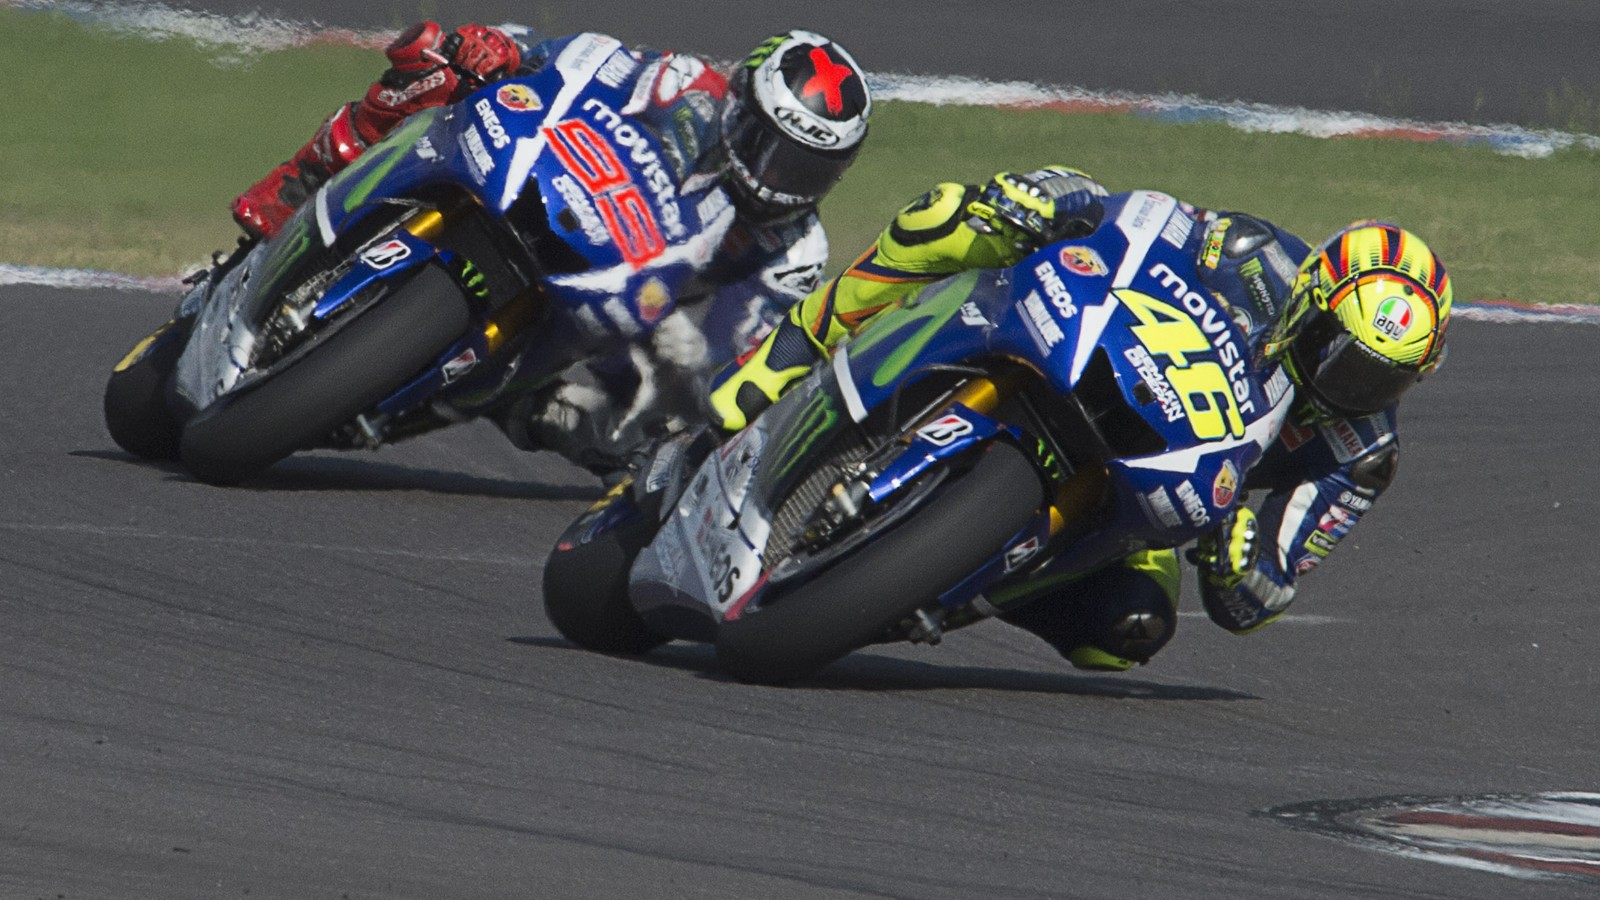 MotoGP: Rossi and Lorenzo resume duel at Silverstone - CNN.com